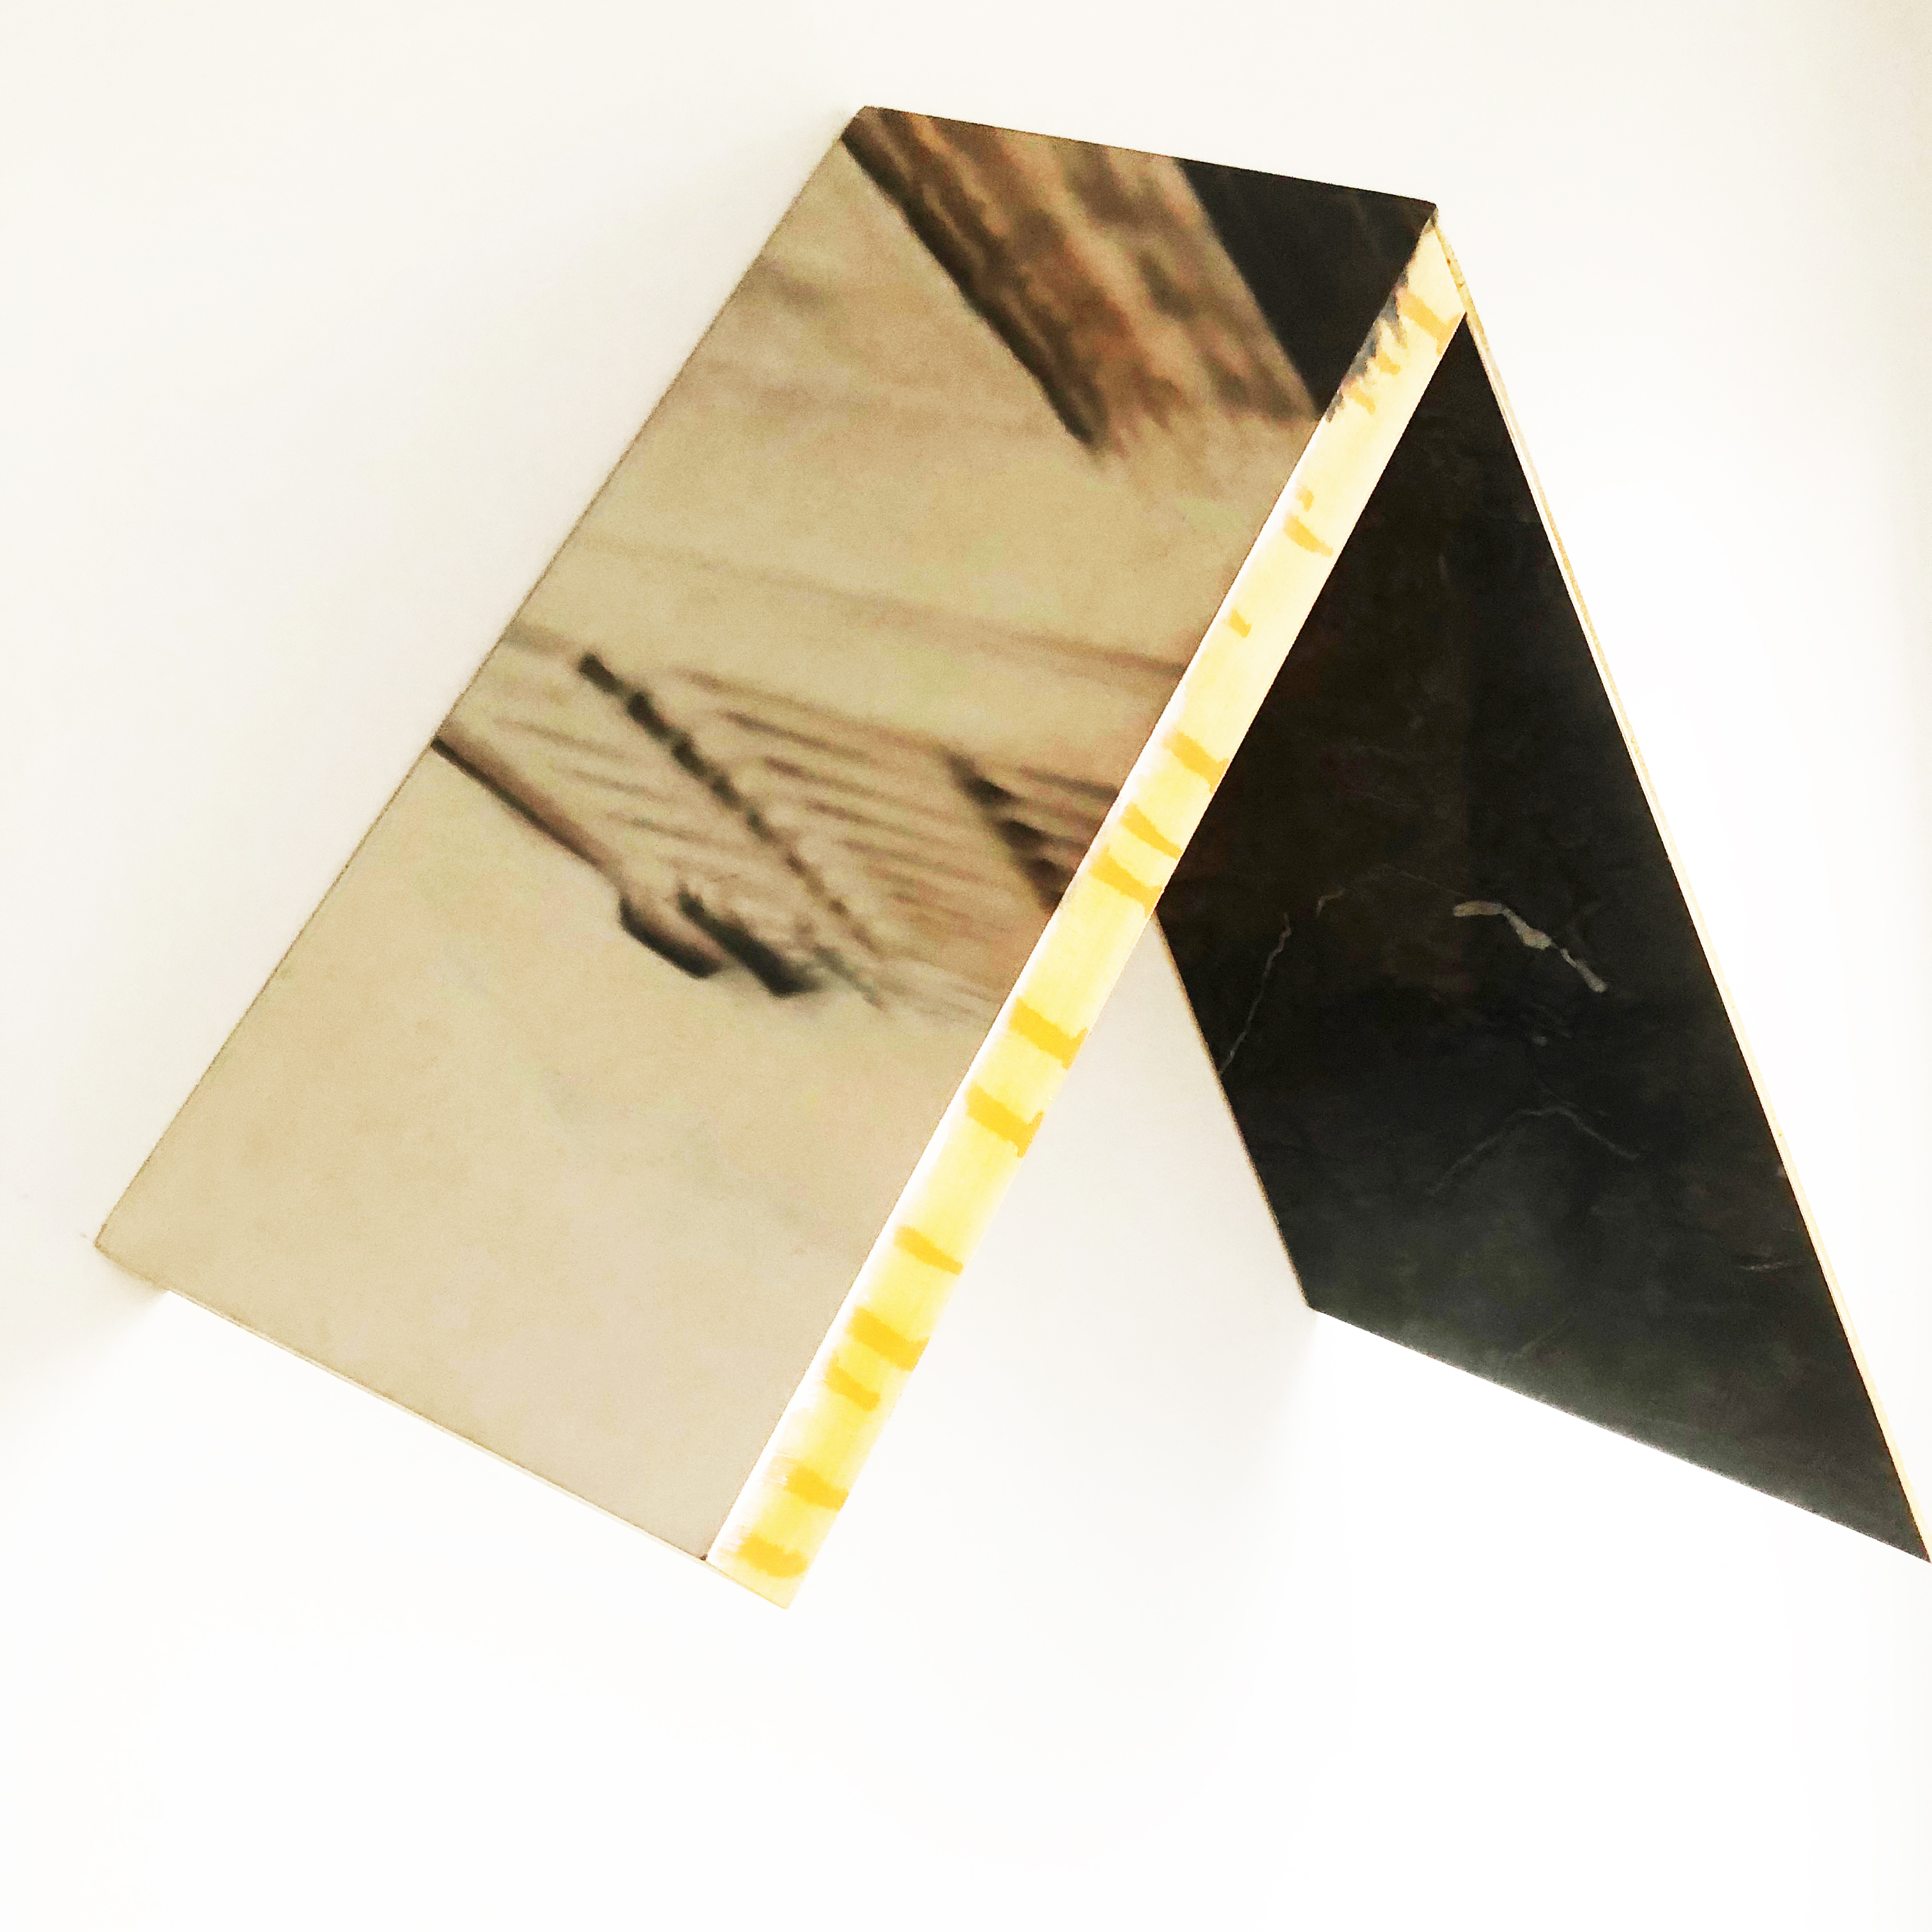 Structural Dynamics artwork by Antonio Petracca - art listed for sale on Artplode